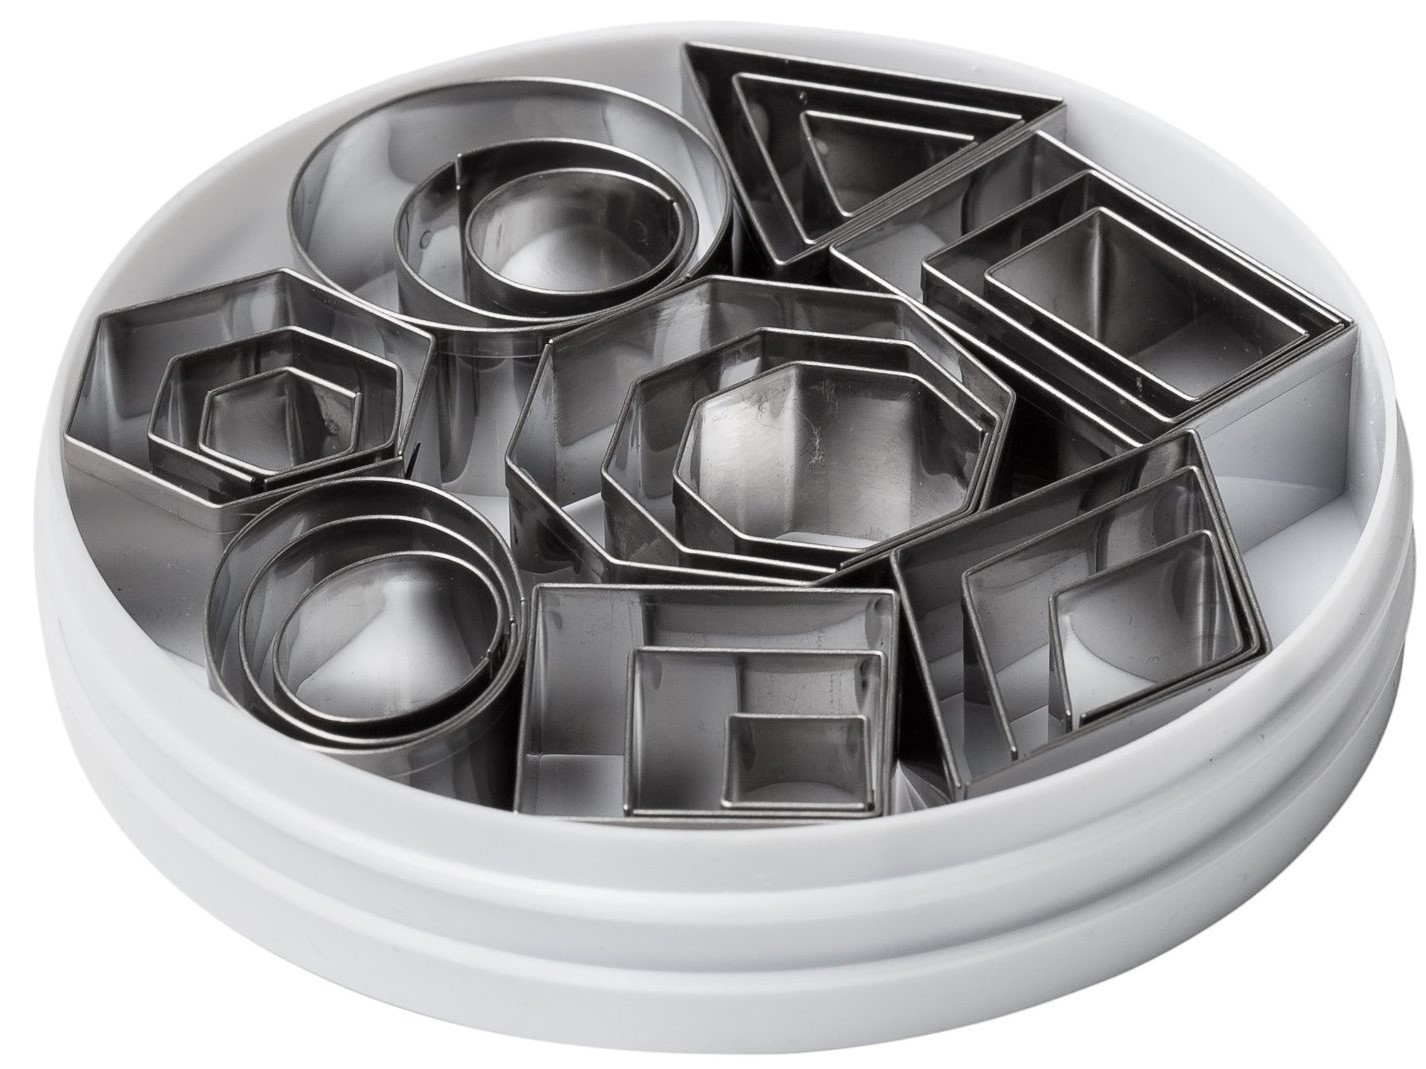 Ateco cookie cutters